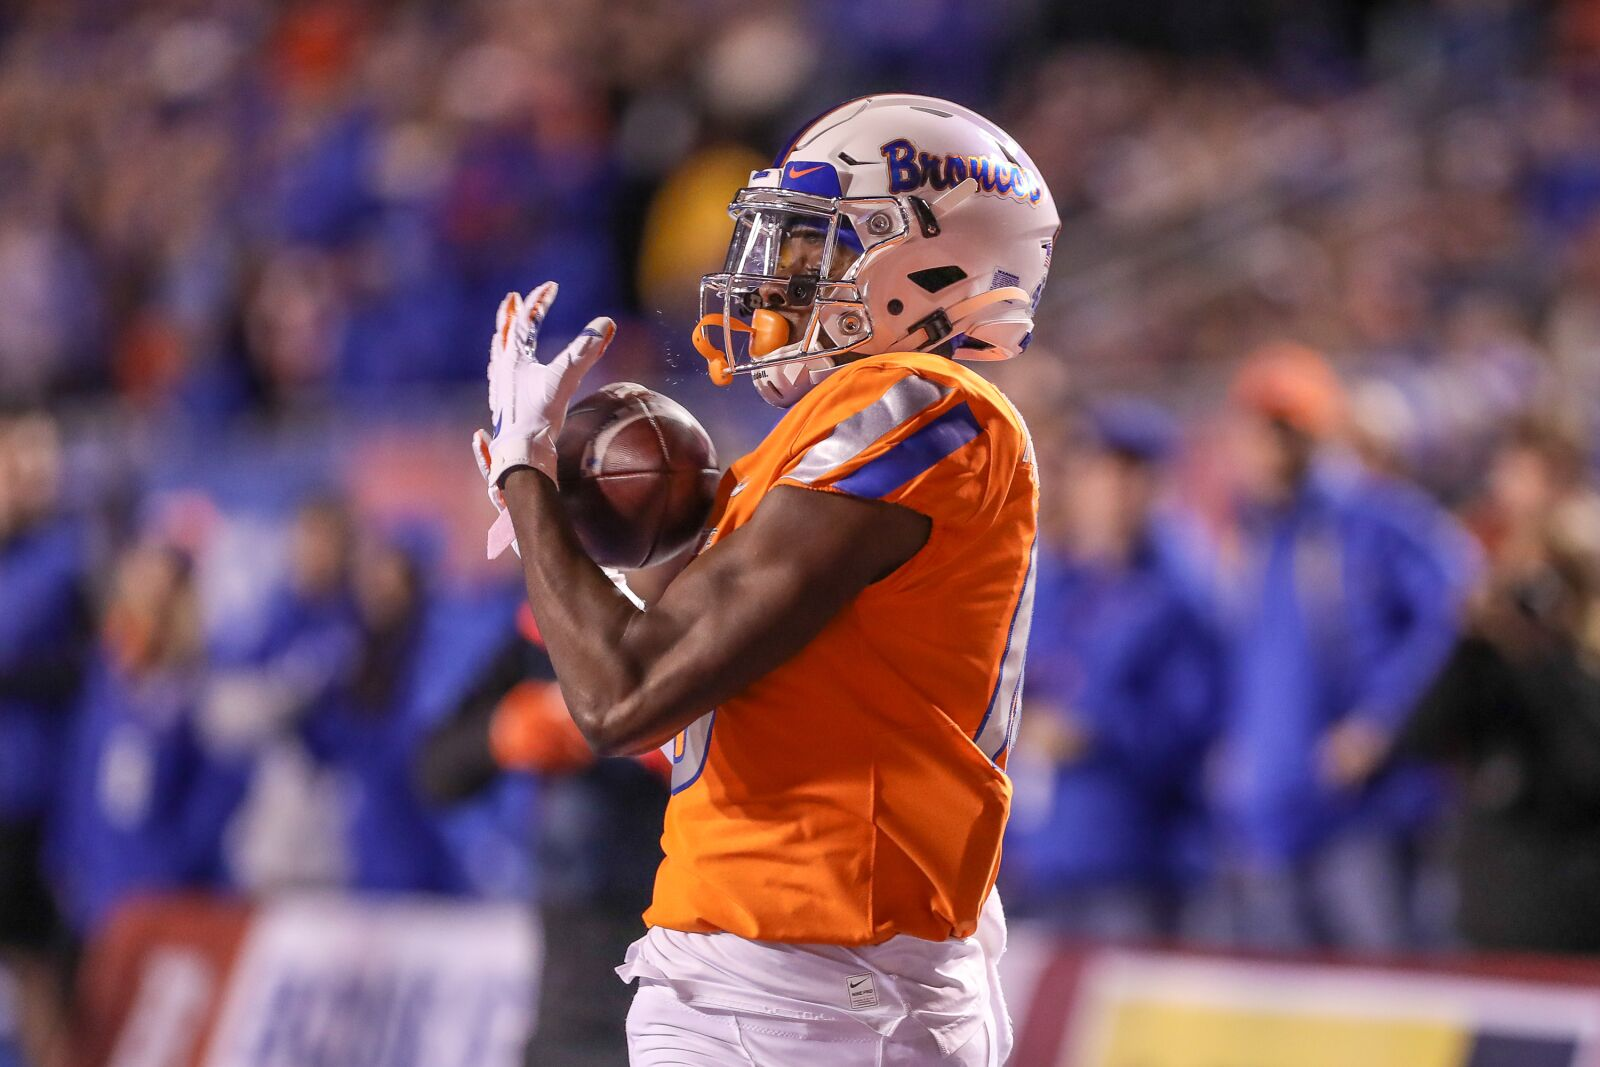 Boise State Football: 3 takeaways from runaway victory over Hawaii